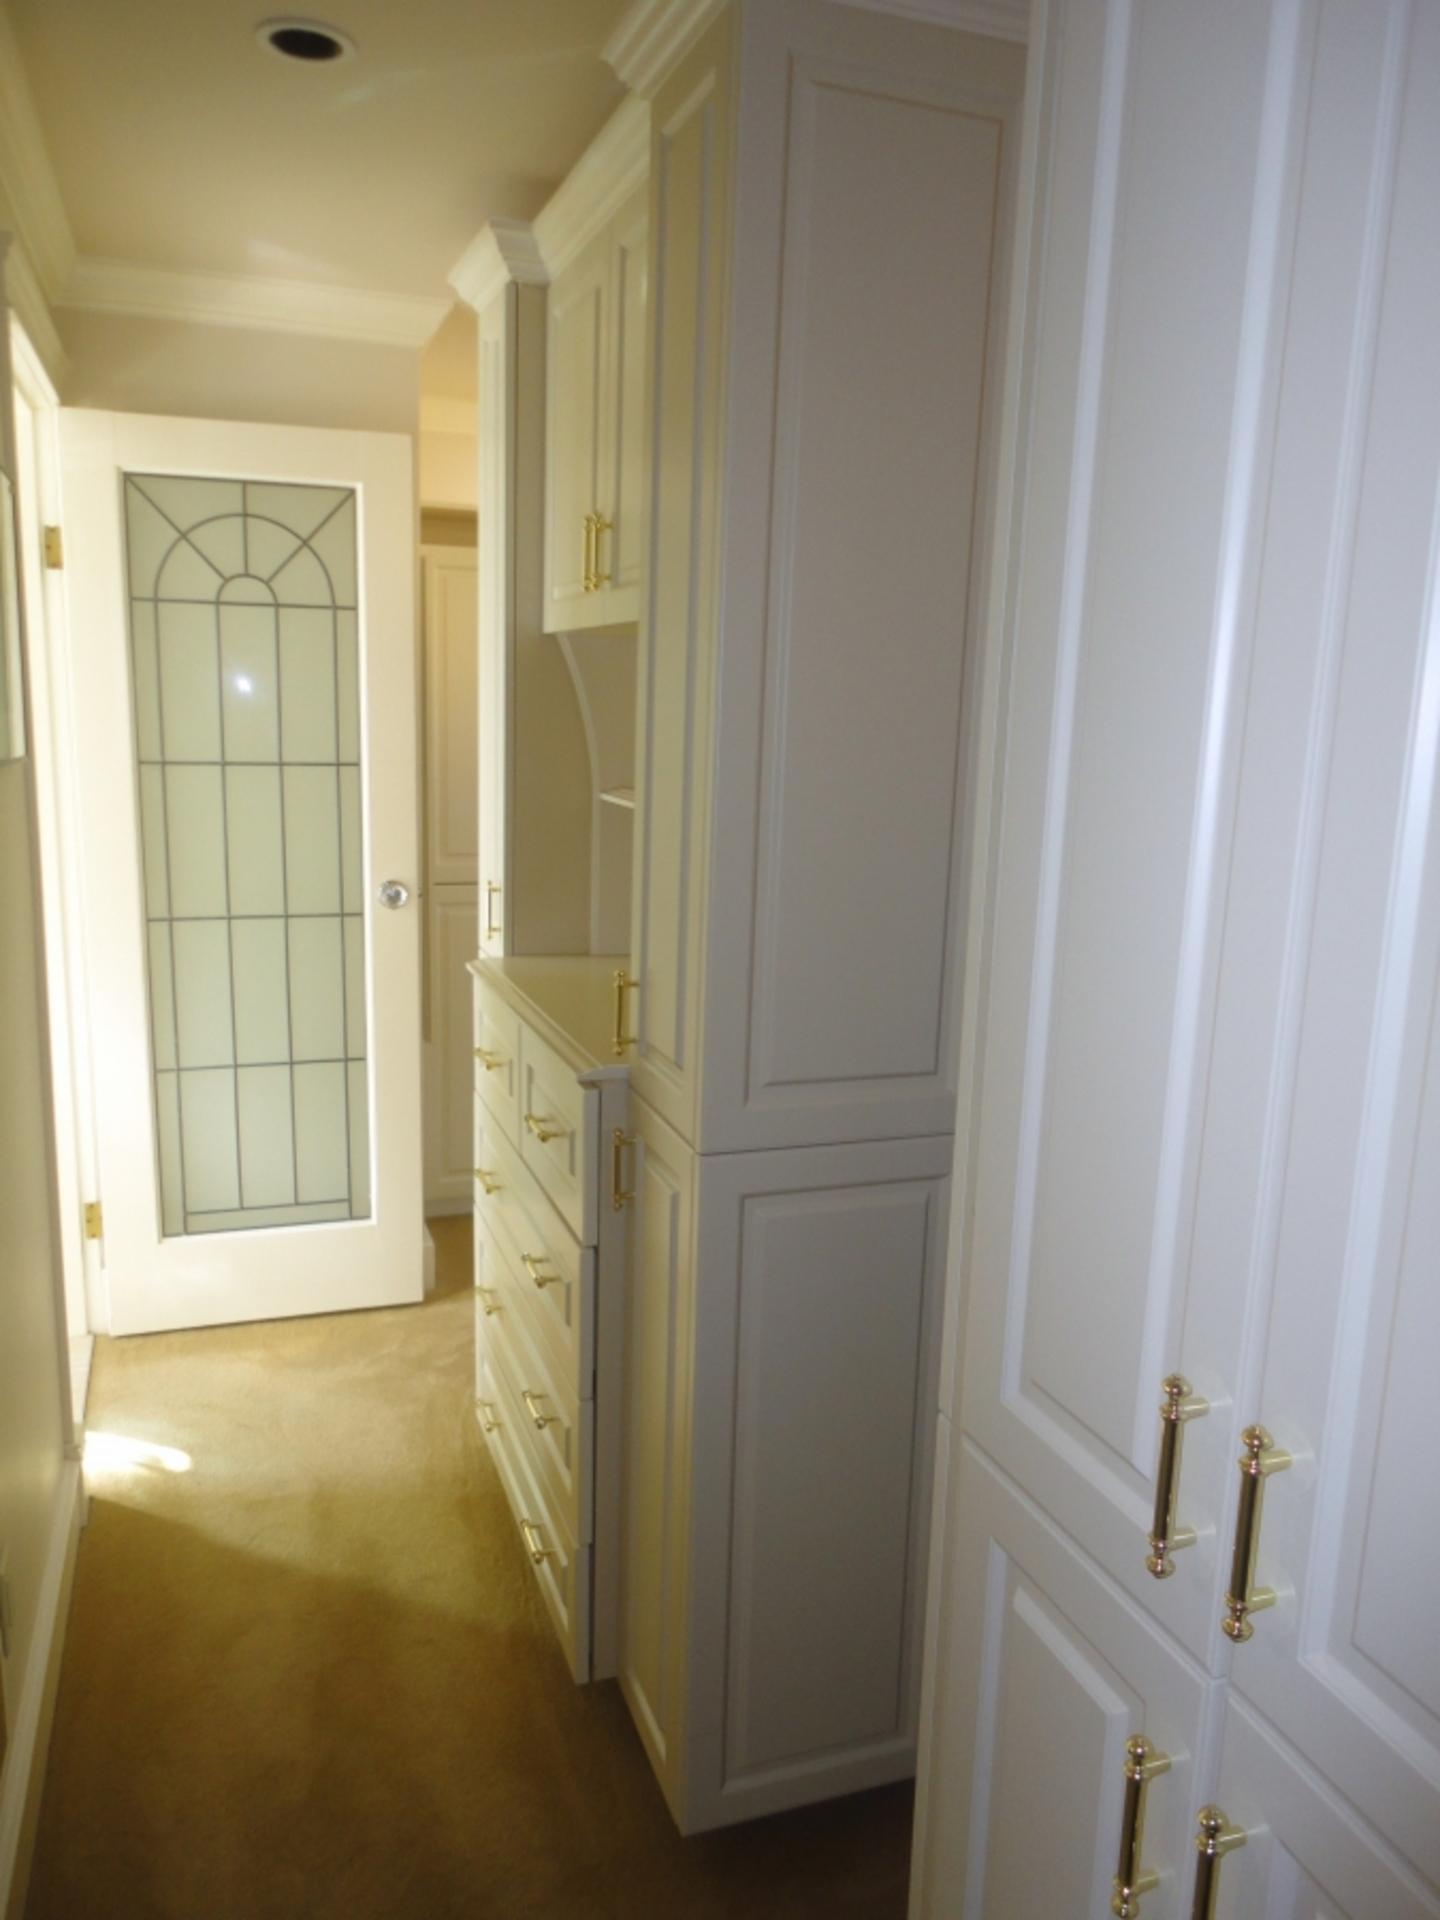 Walk-in Closet at Address Upon Request, South Cambie, Vancouver West